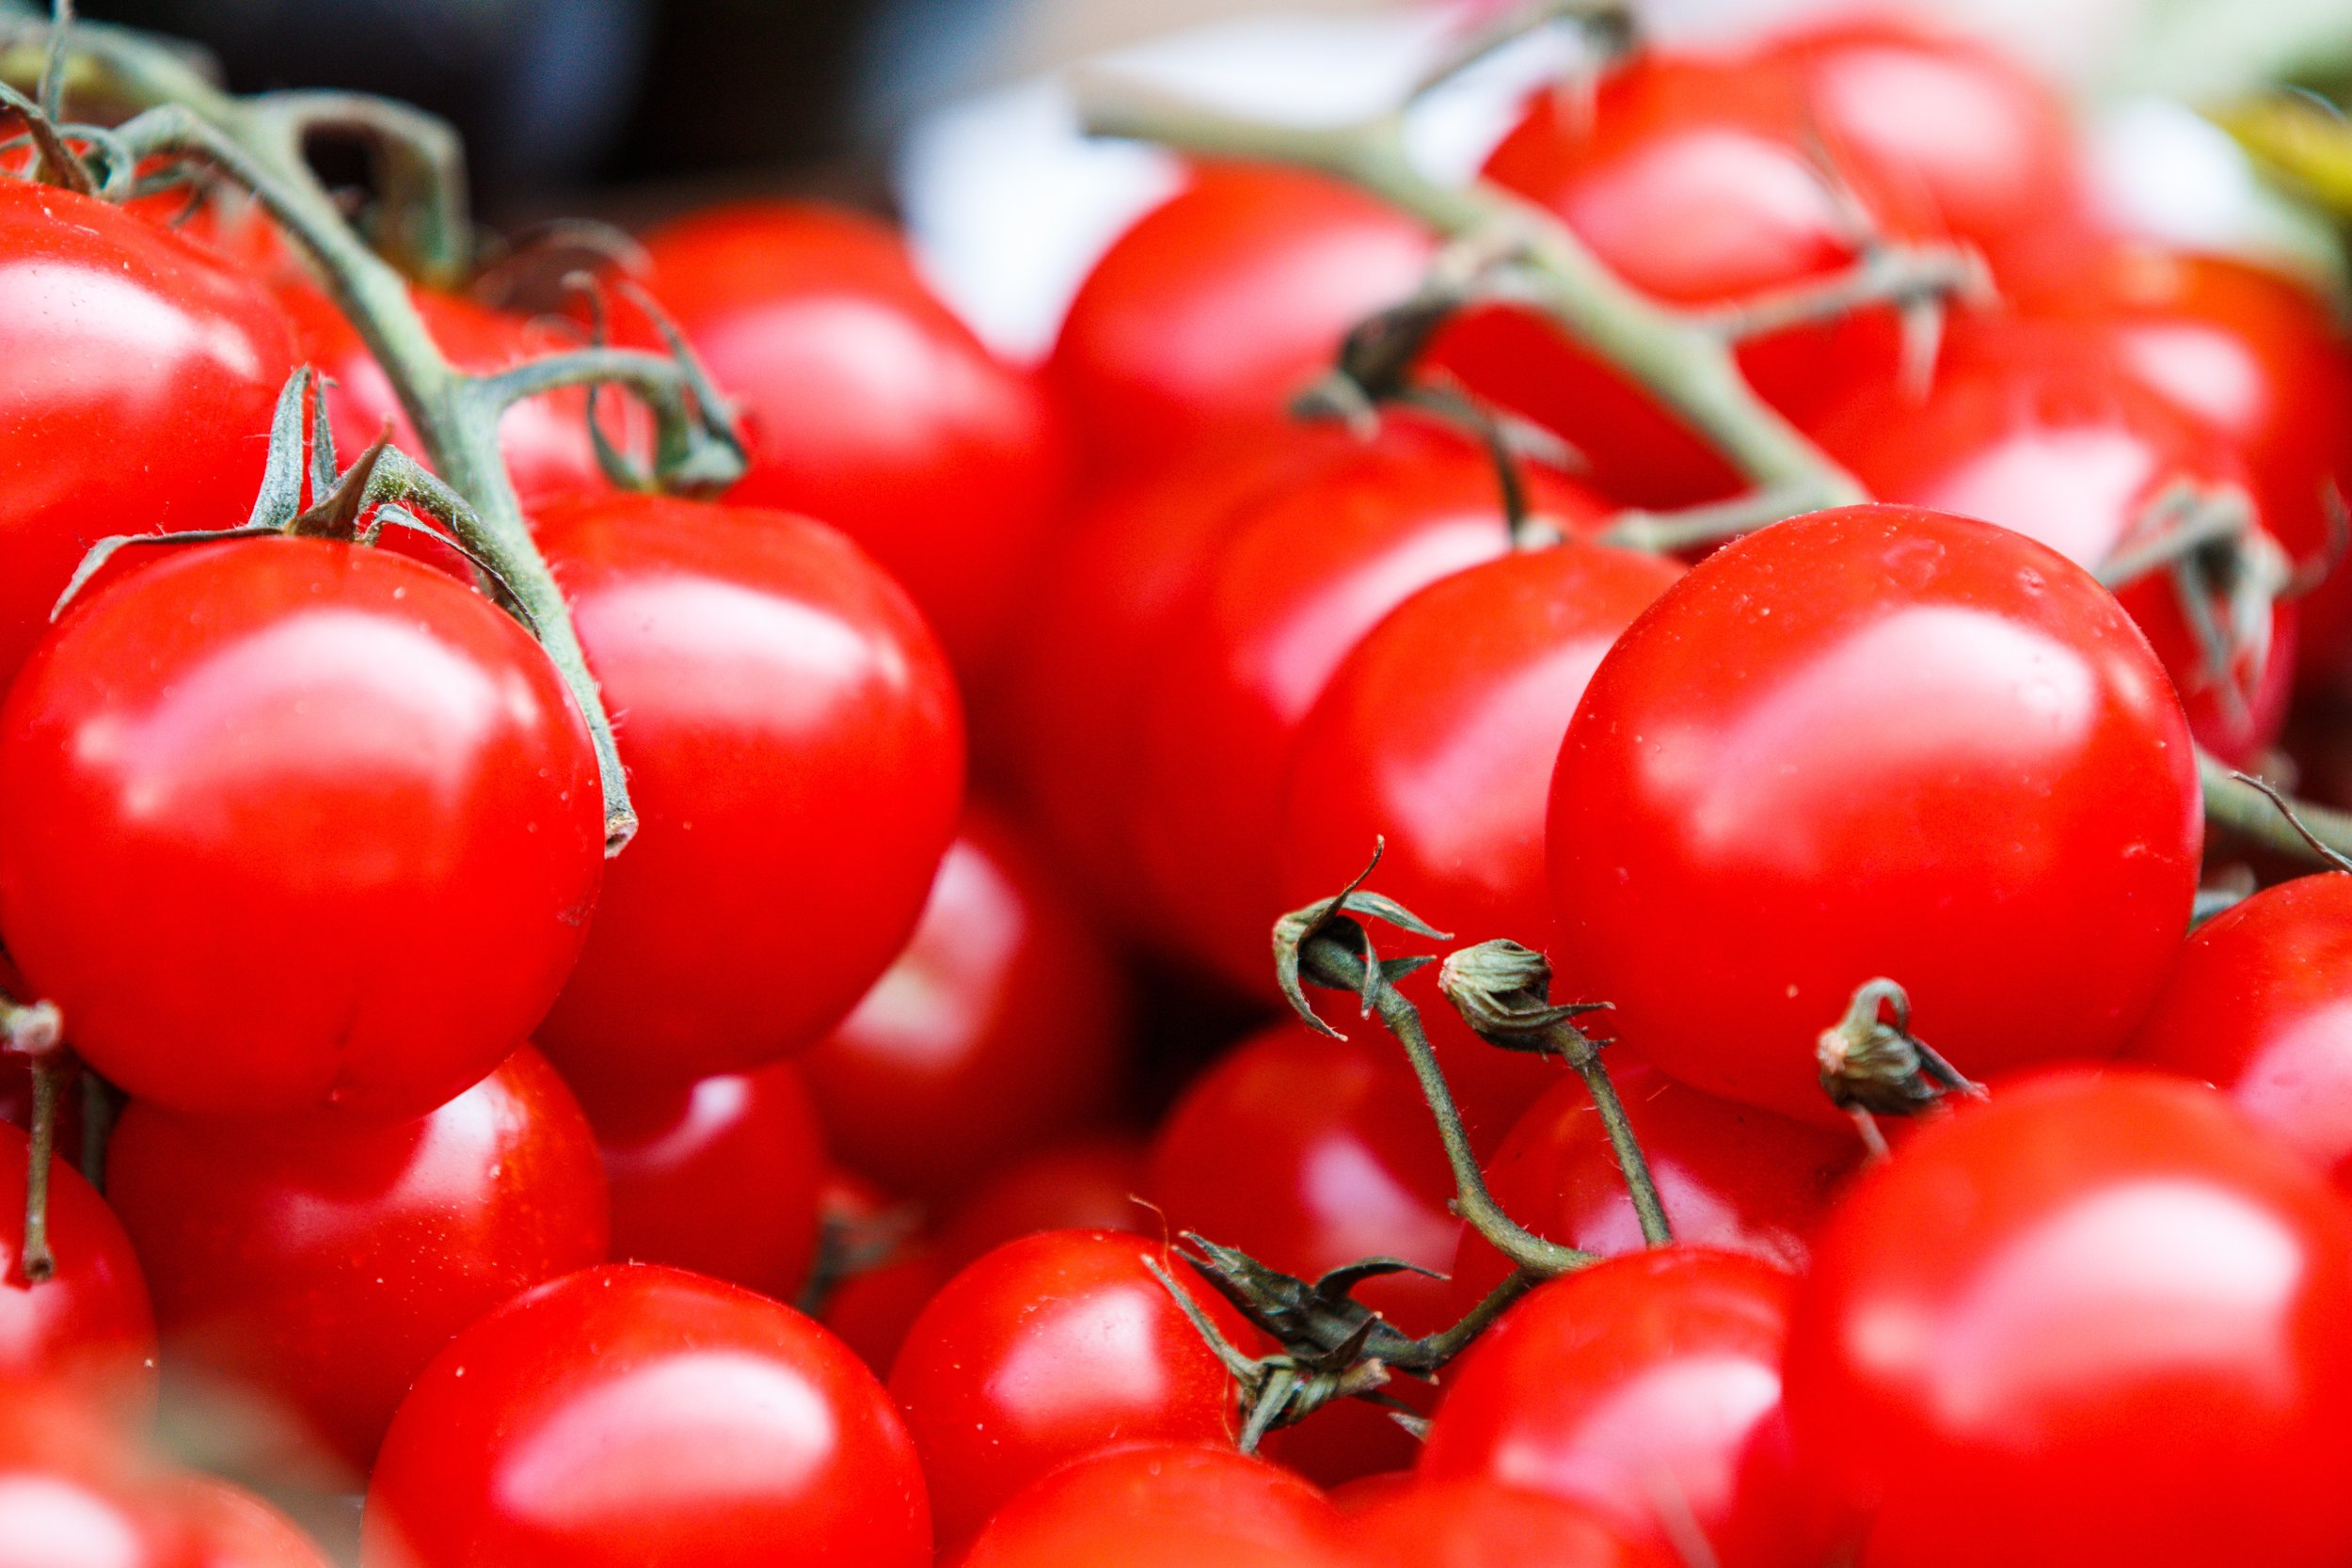 Tomatoes are rich in lutein, lycopene, and beta-carotene, which are antioxidants that offer skin-protective properties.